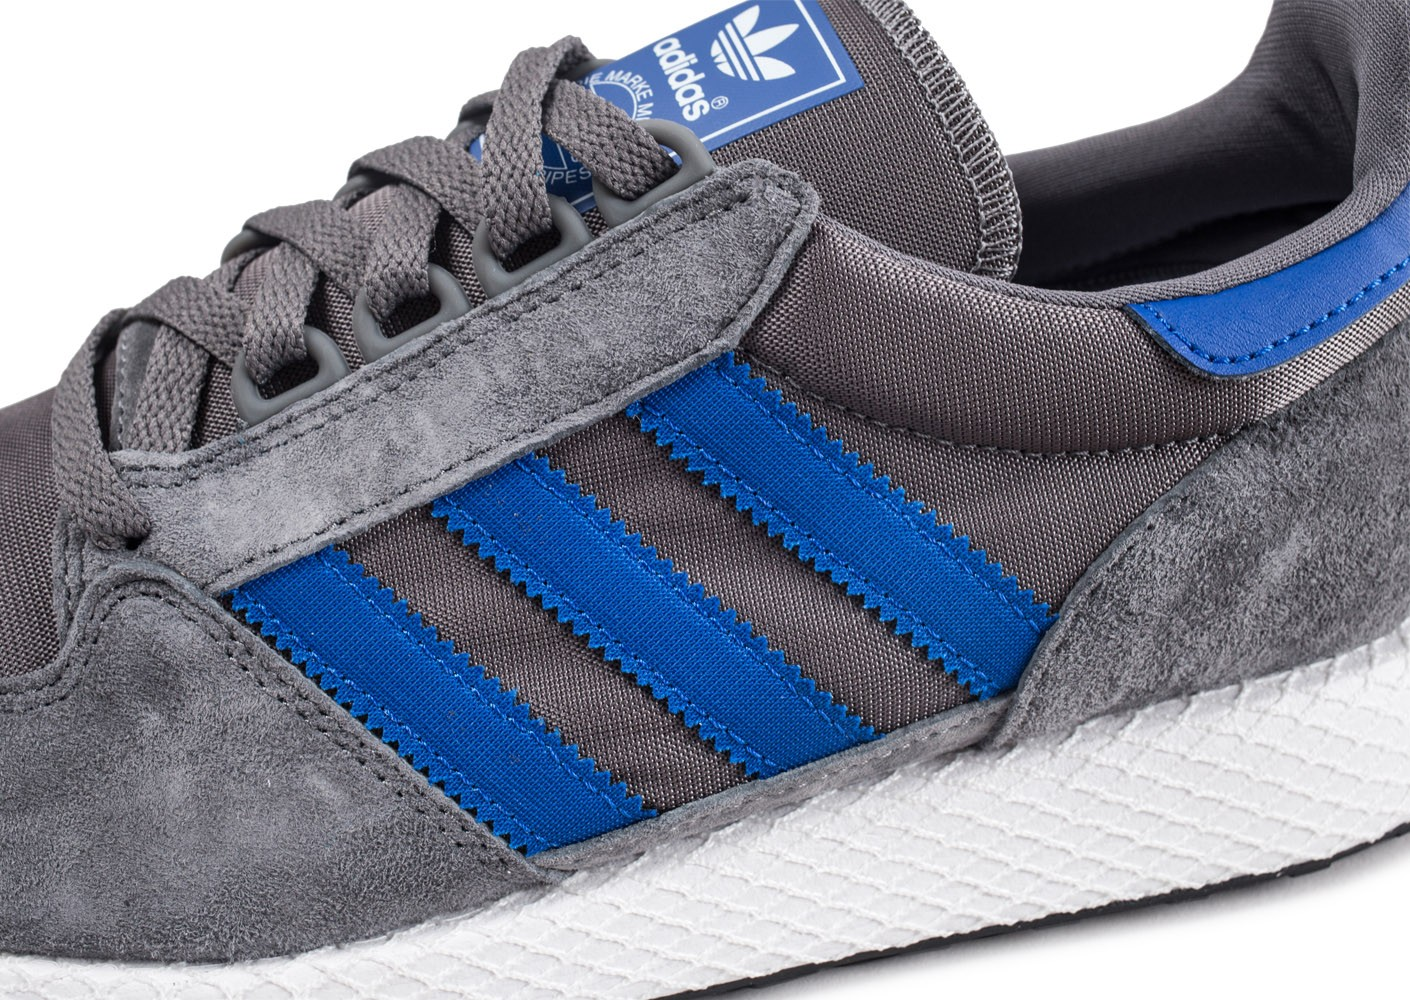 Et Adidas Grise Homme Bleue R茅tro running Forest Grove PkXnwNO80